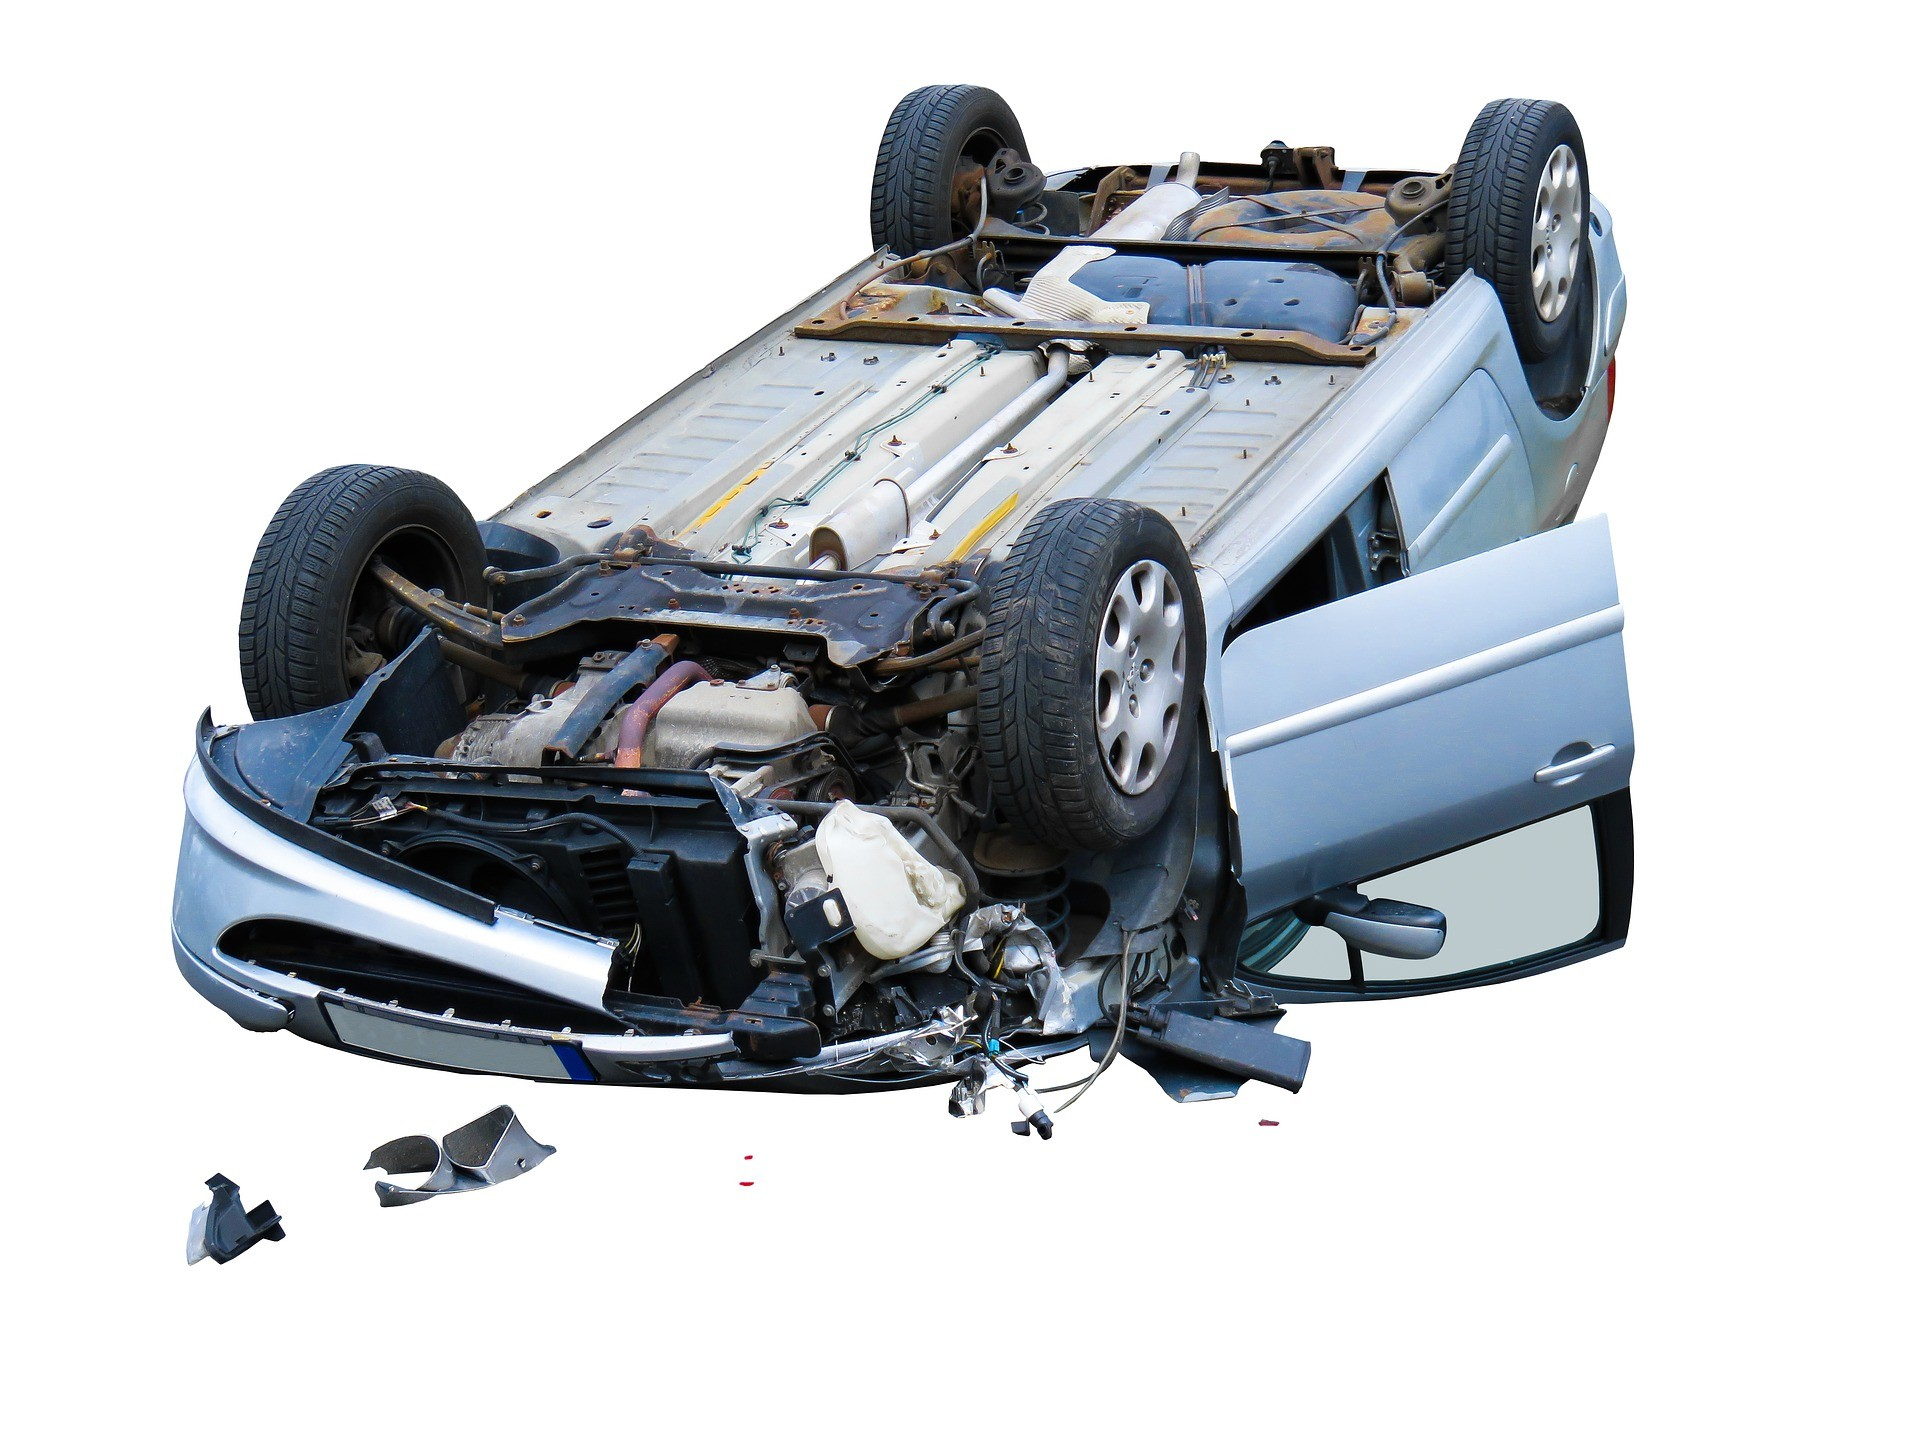 Scrap My Car? Yes! We Offer Cash For Junk Cars, Scrap Cars in Altoona, PA!